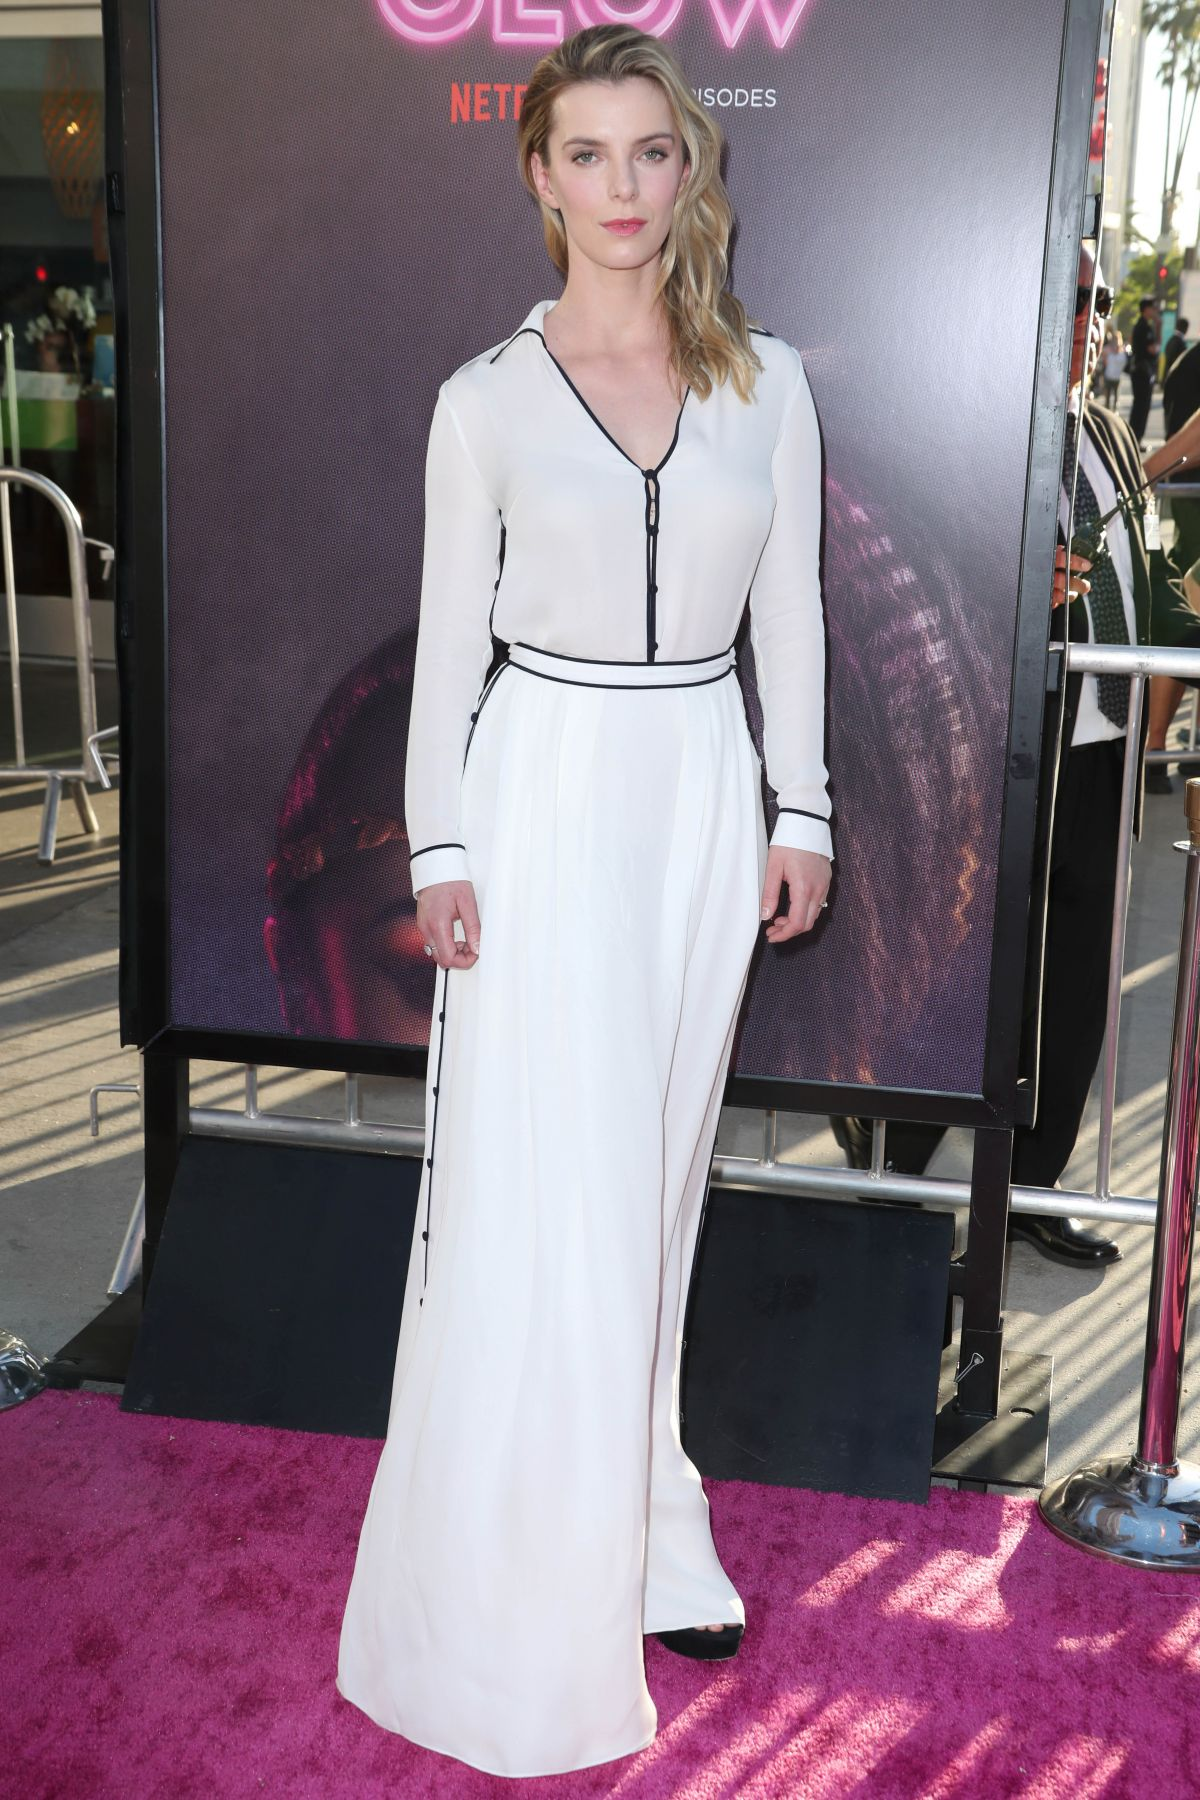 Betty Gilpin At Glow Premiere In Los Angeles 06 21 2017